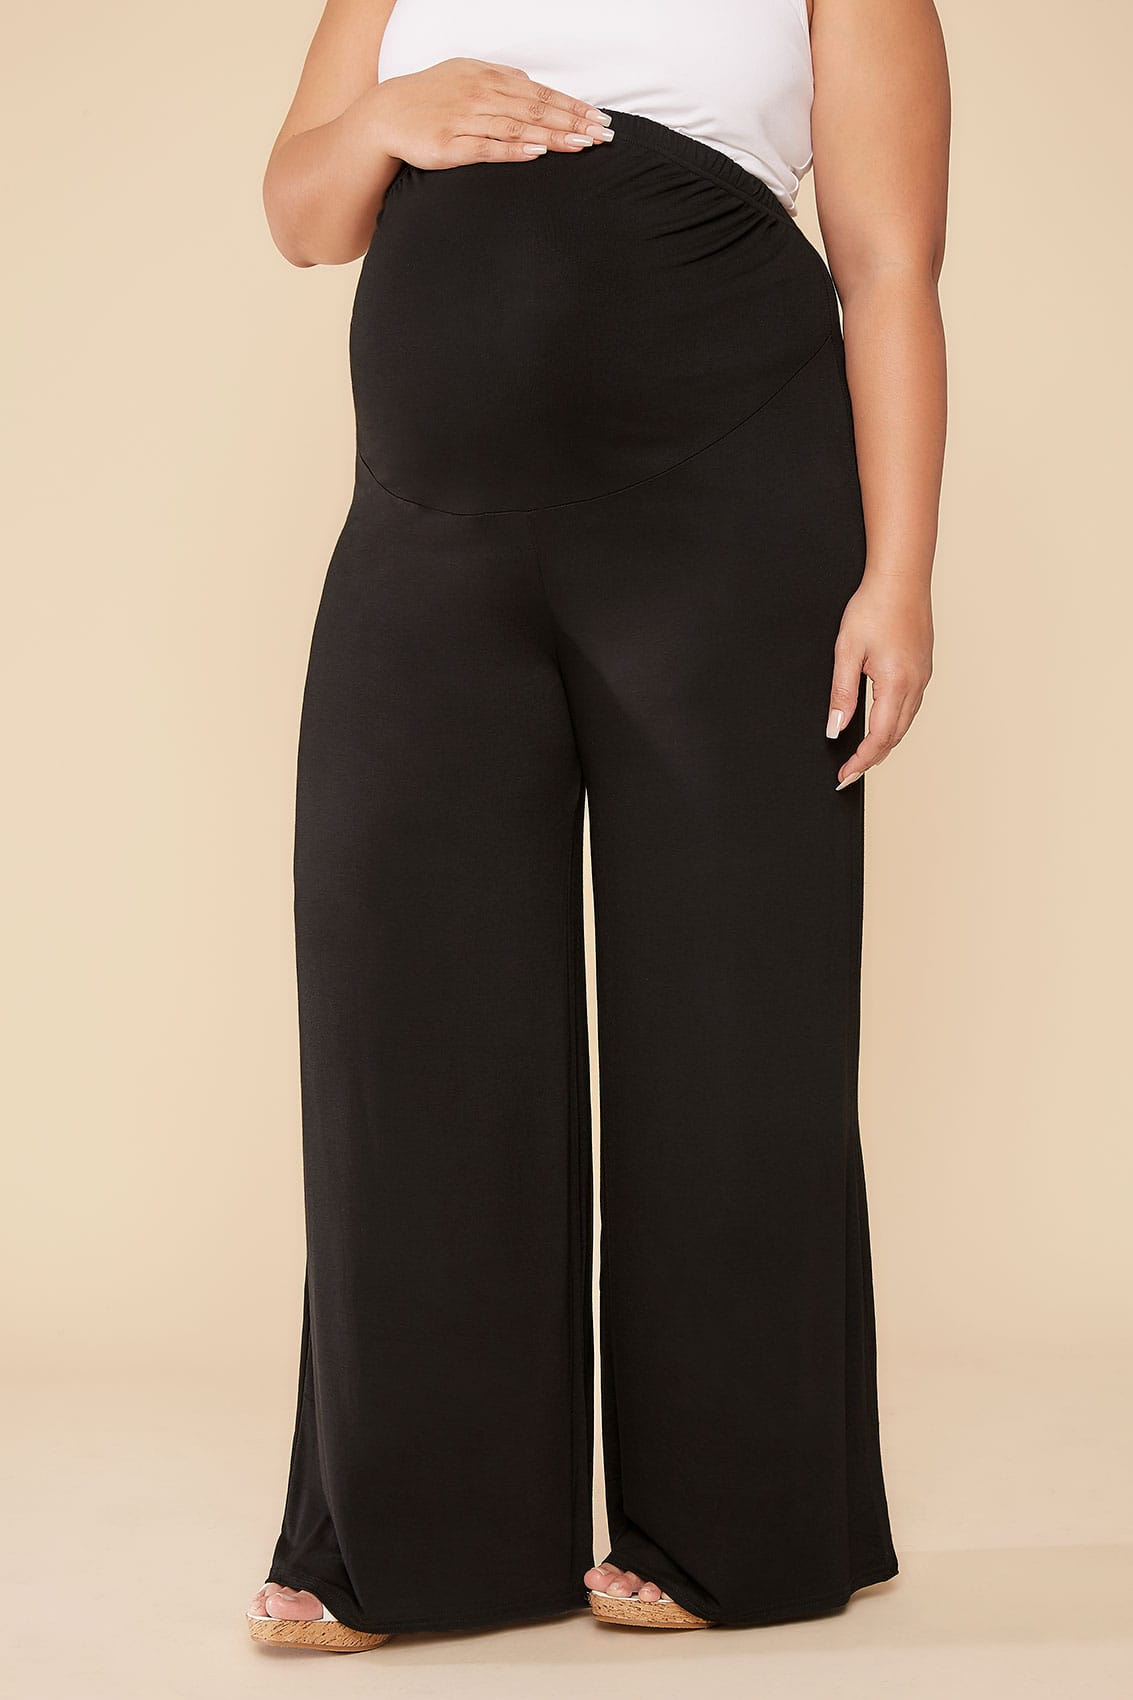 Bump It Up Maternity Black Palazzo Trousers With Comfort -4658